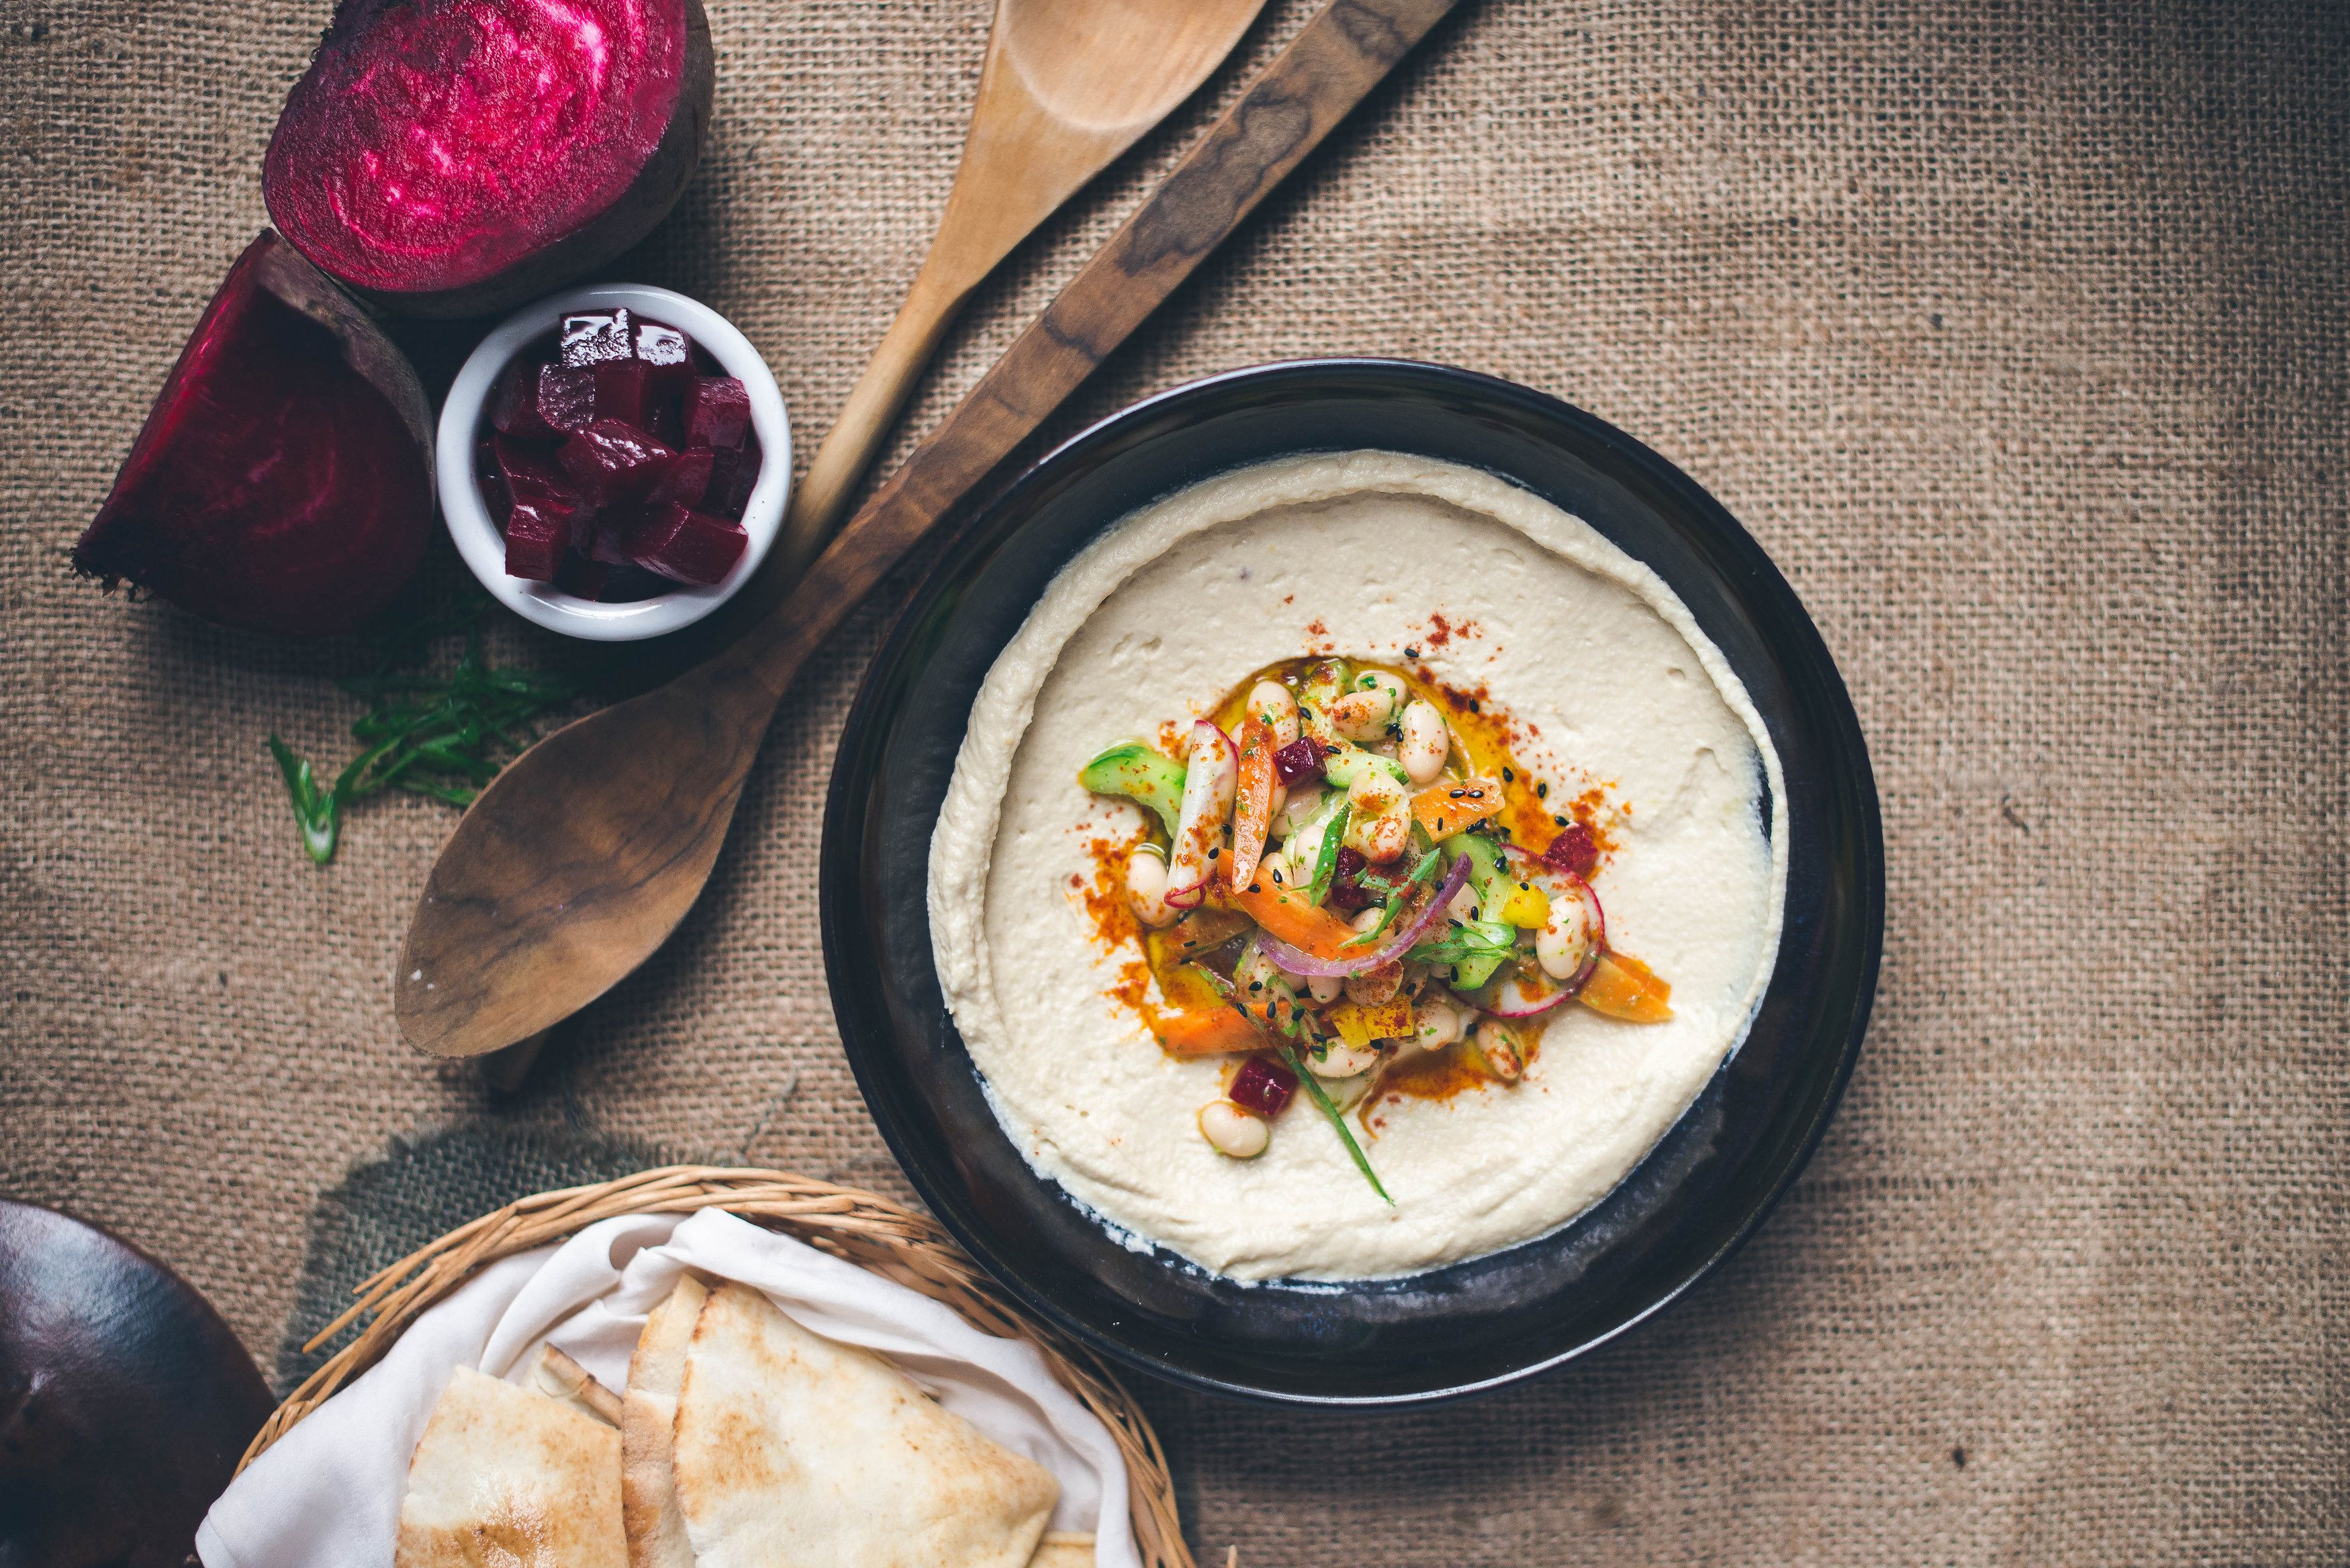 Cuisine Royale Brightness Too High Warm Tahini Hummus Soom Tahini Recipes Hummus Tahini